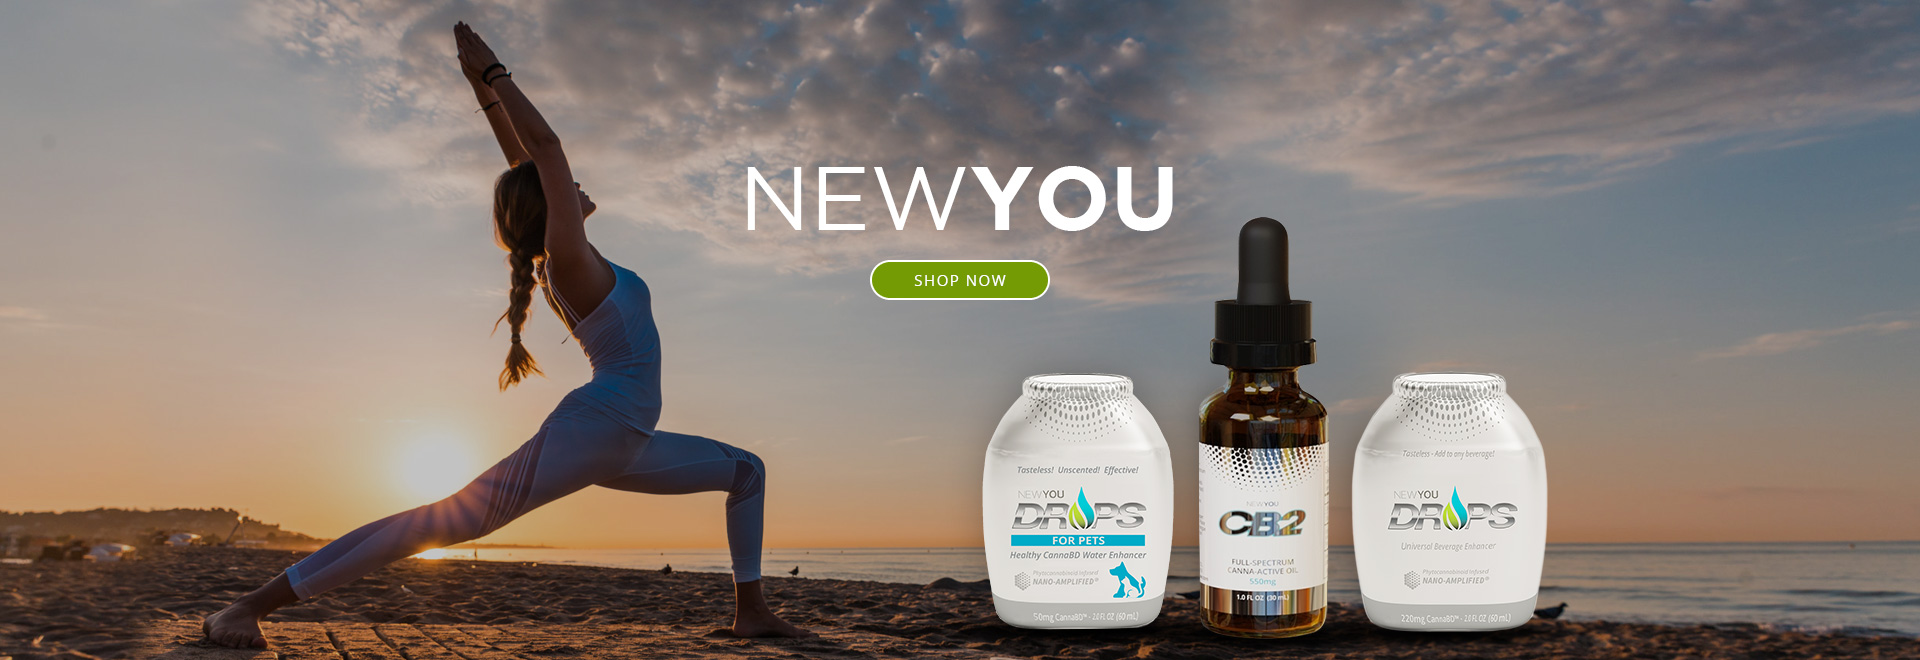 NEWYOU Beauty and Makeup Products